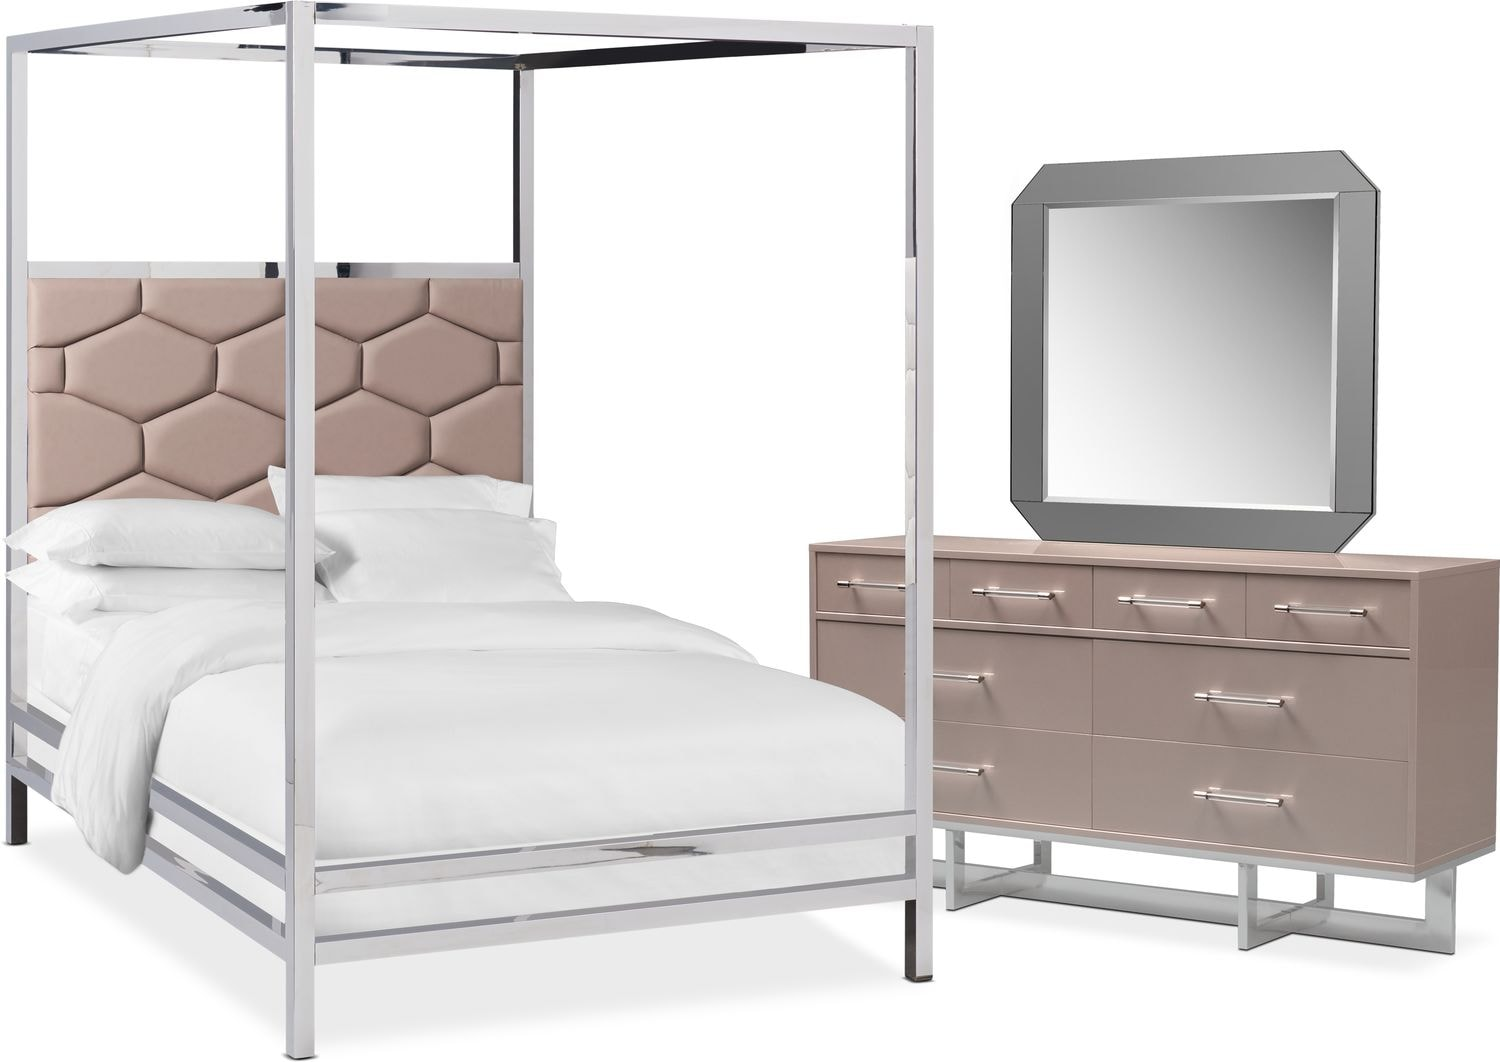 Bedroom Furniture - Concerto 5-Piece Canopy Bedroom Set with Dresser and Mirror